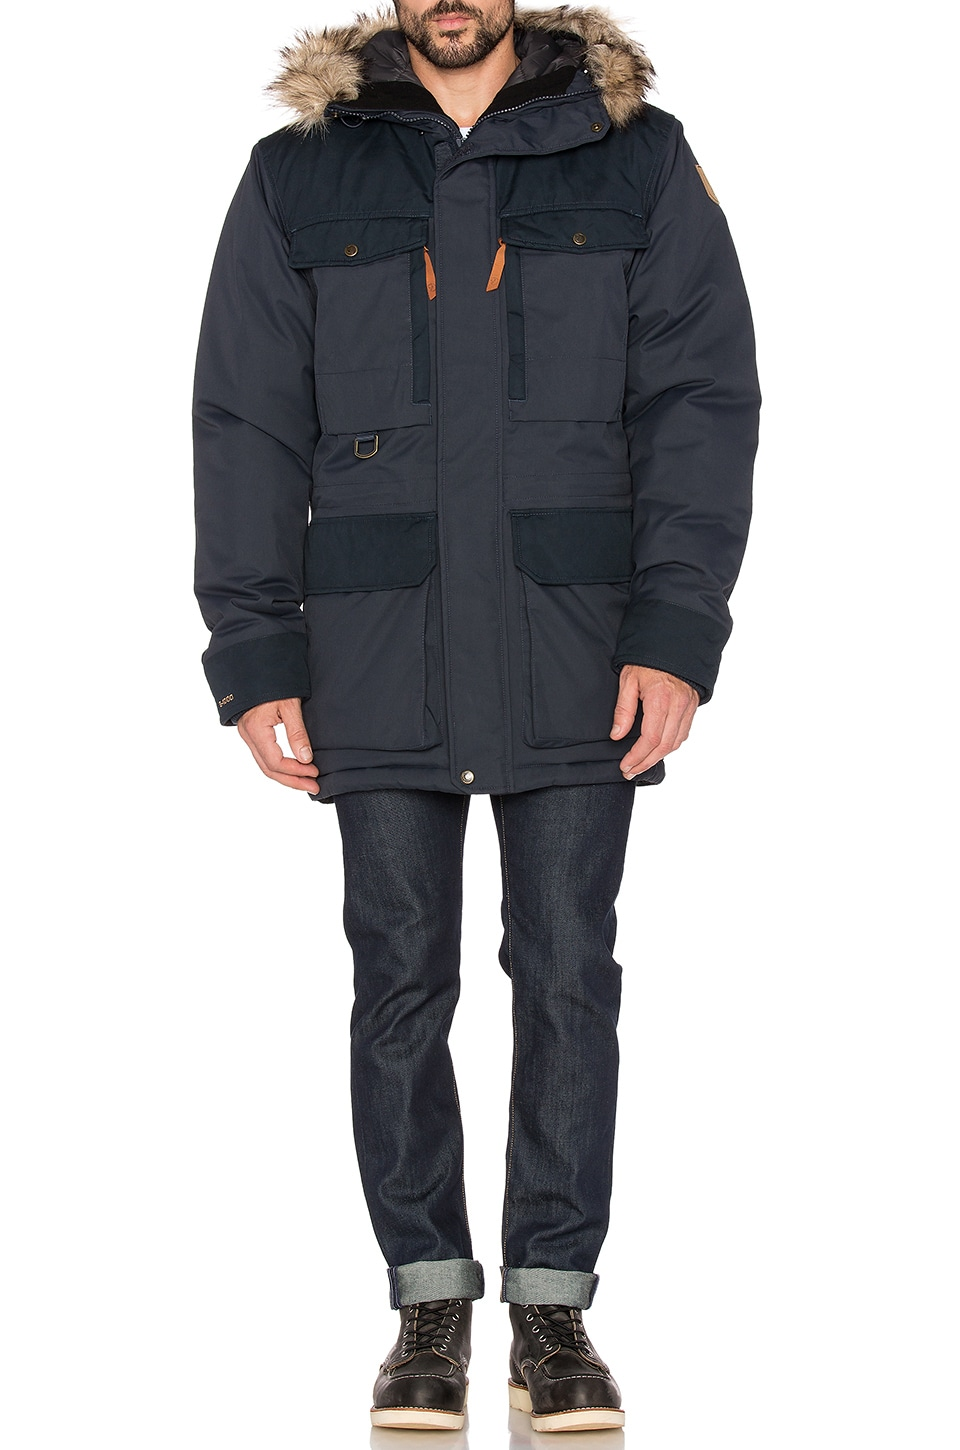 promo code f553a faaf0 Fjallraven Polar Guide Parka with Faux Fur Lining in Dark ...